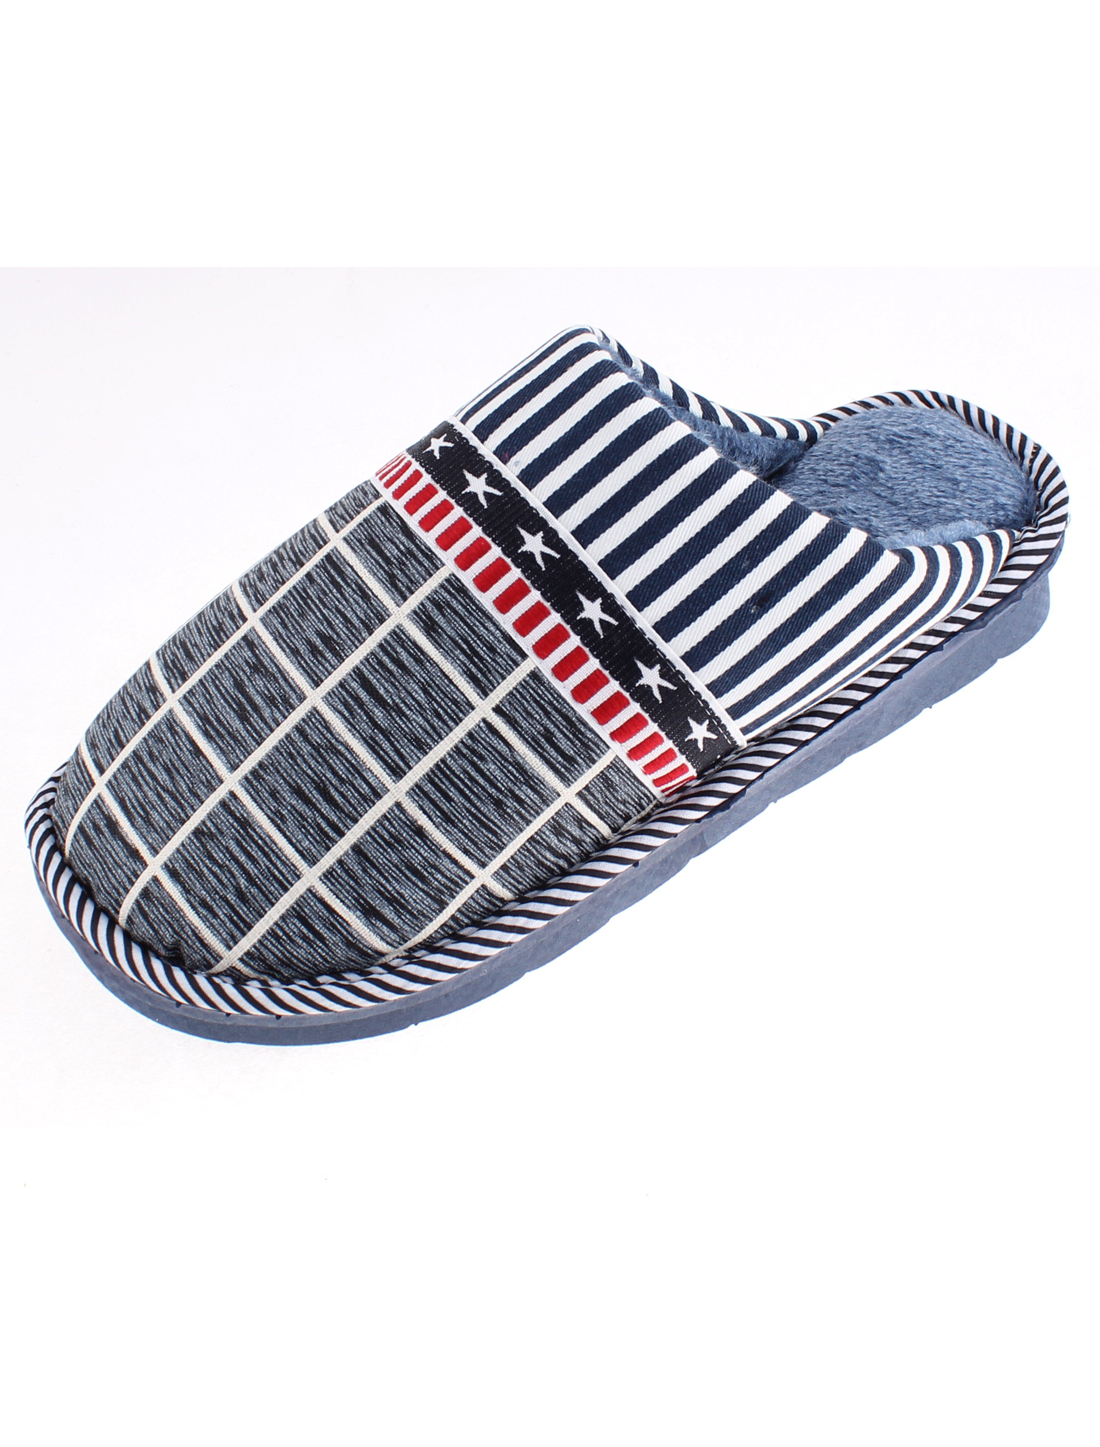 Grid Stars Stripe Pattern Casual Warmer Slippers for Women Blue US 9.5